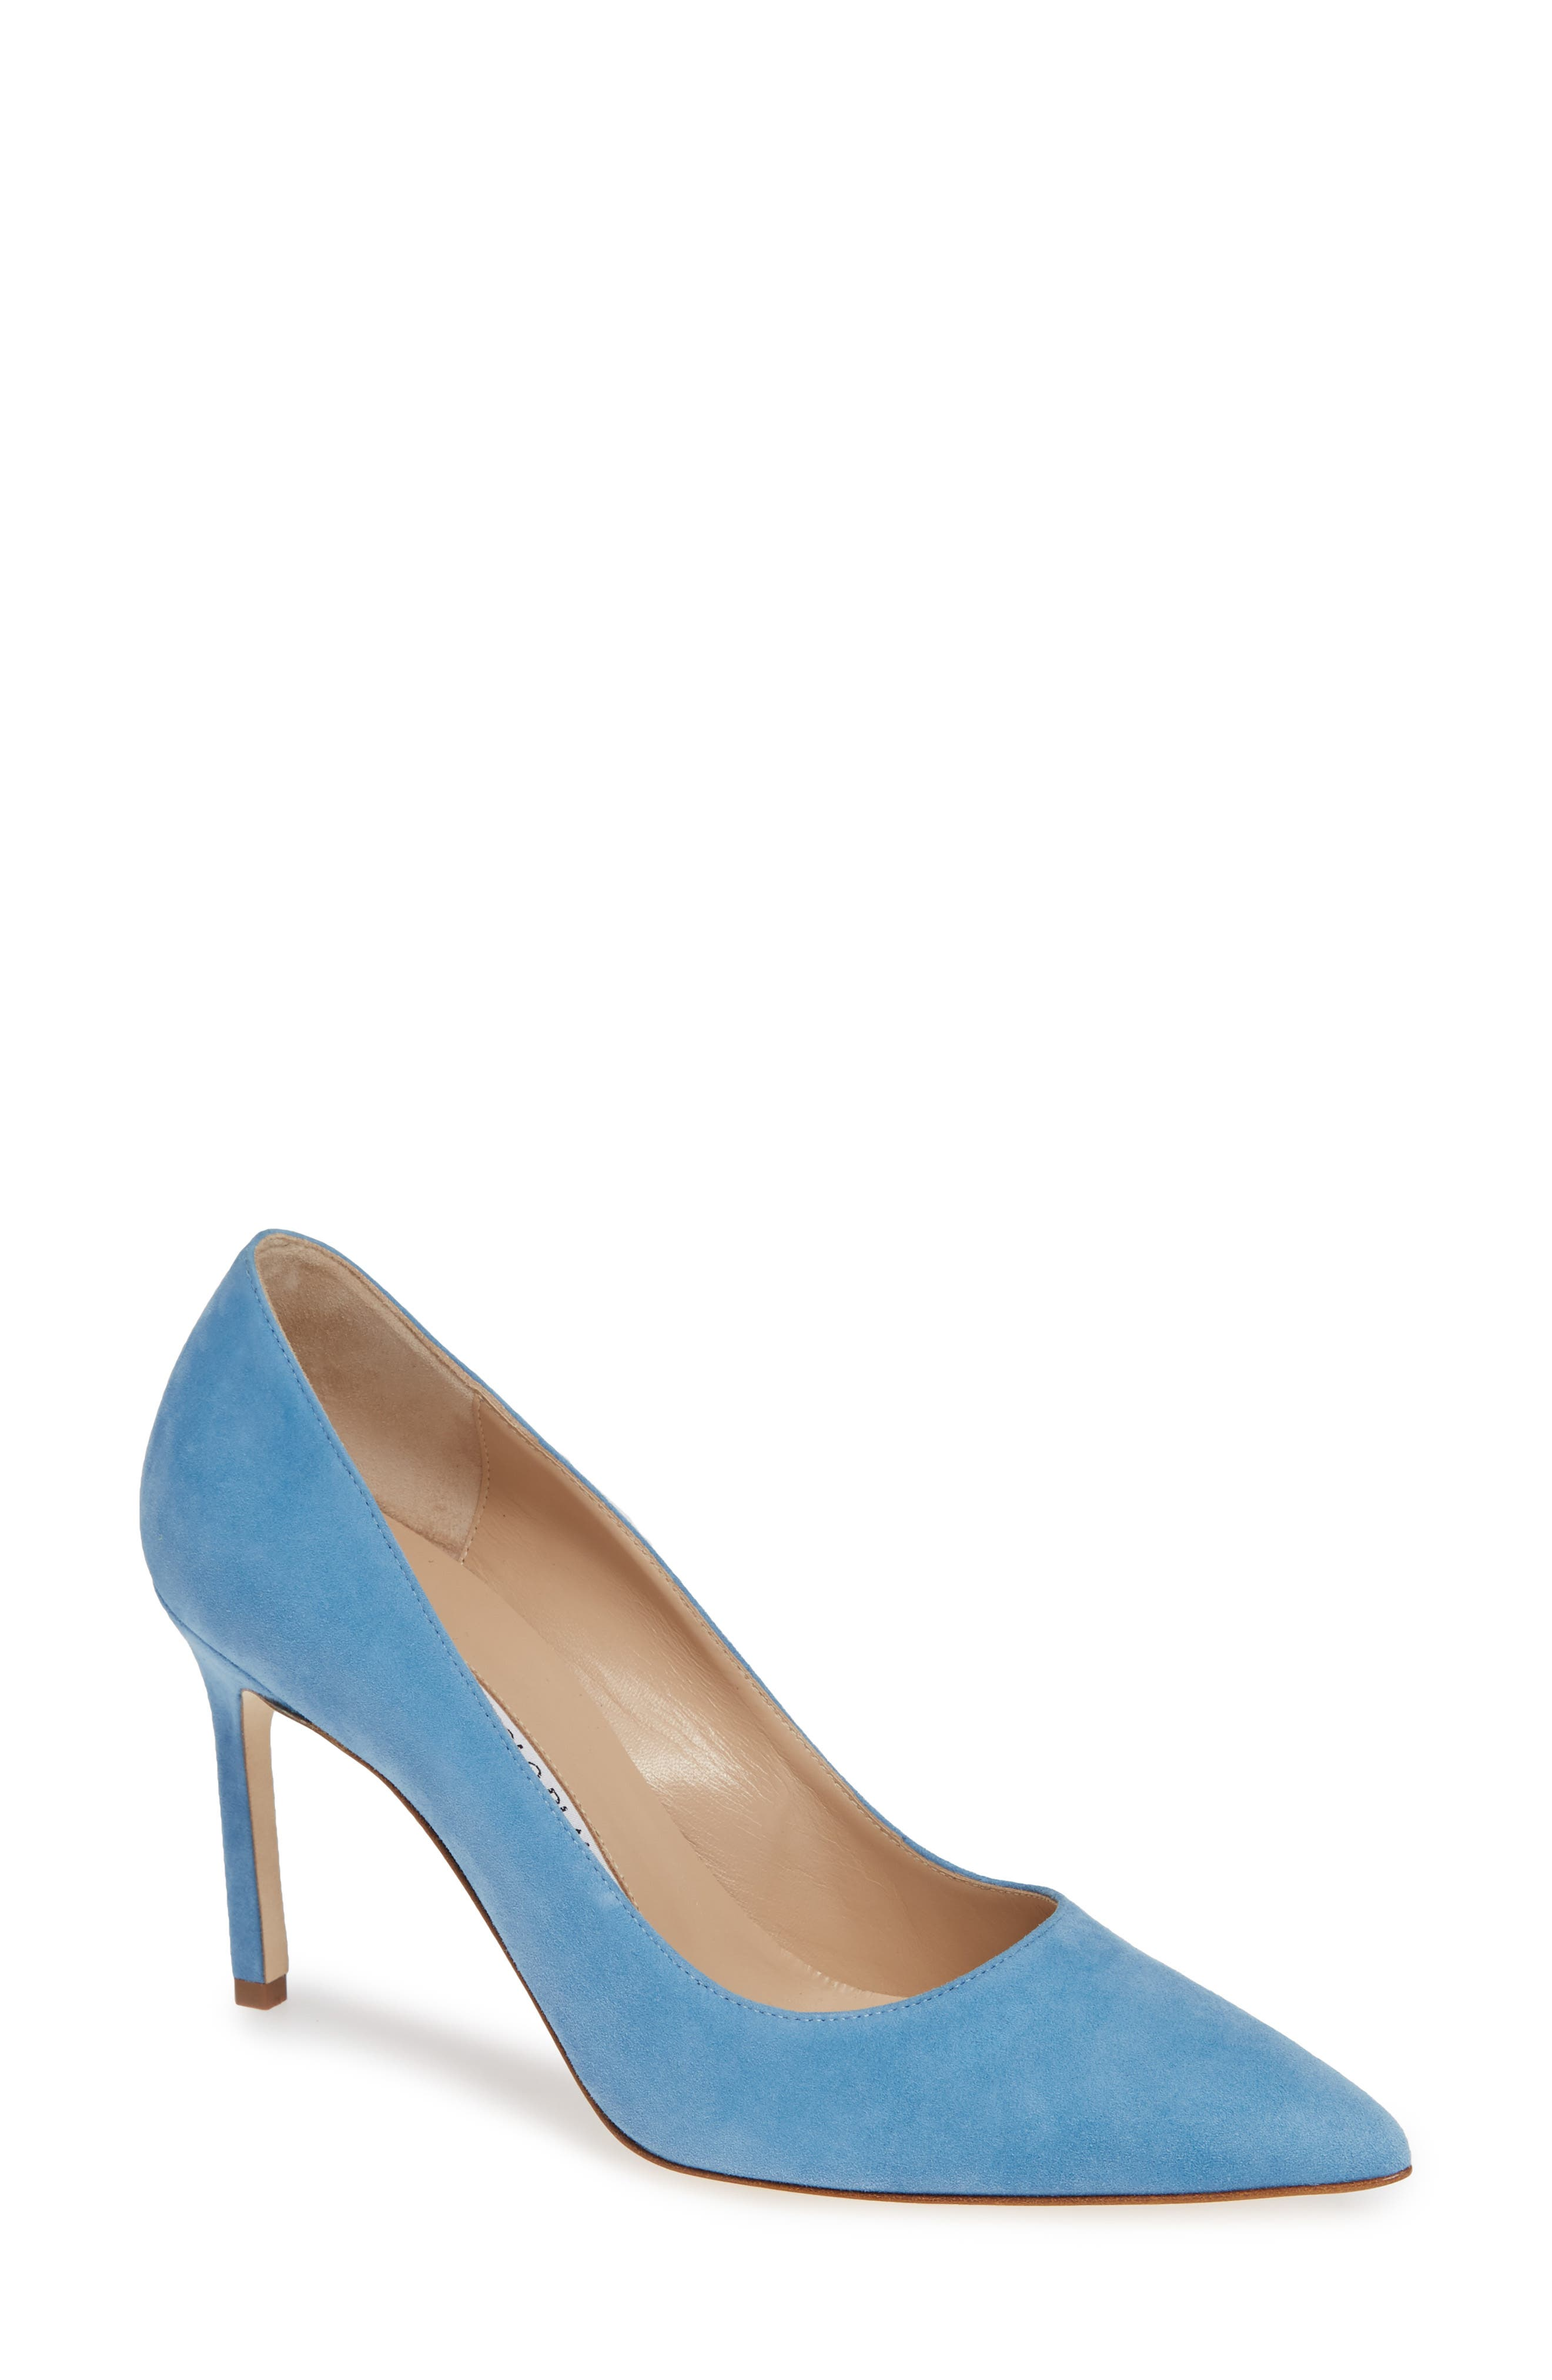 BB Pointy Toe Pump,                             Main thumbnail 1, color,                             POWDER BLUE SUEDE